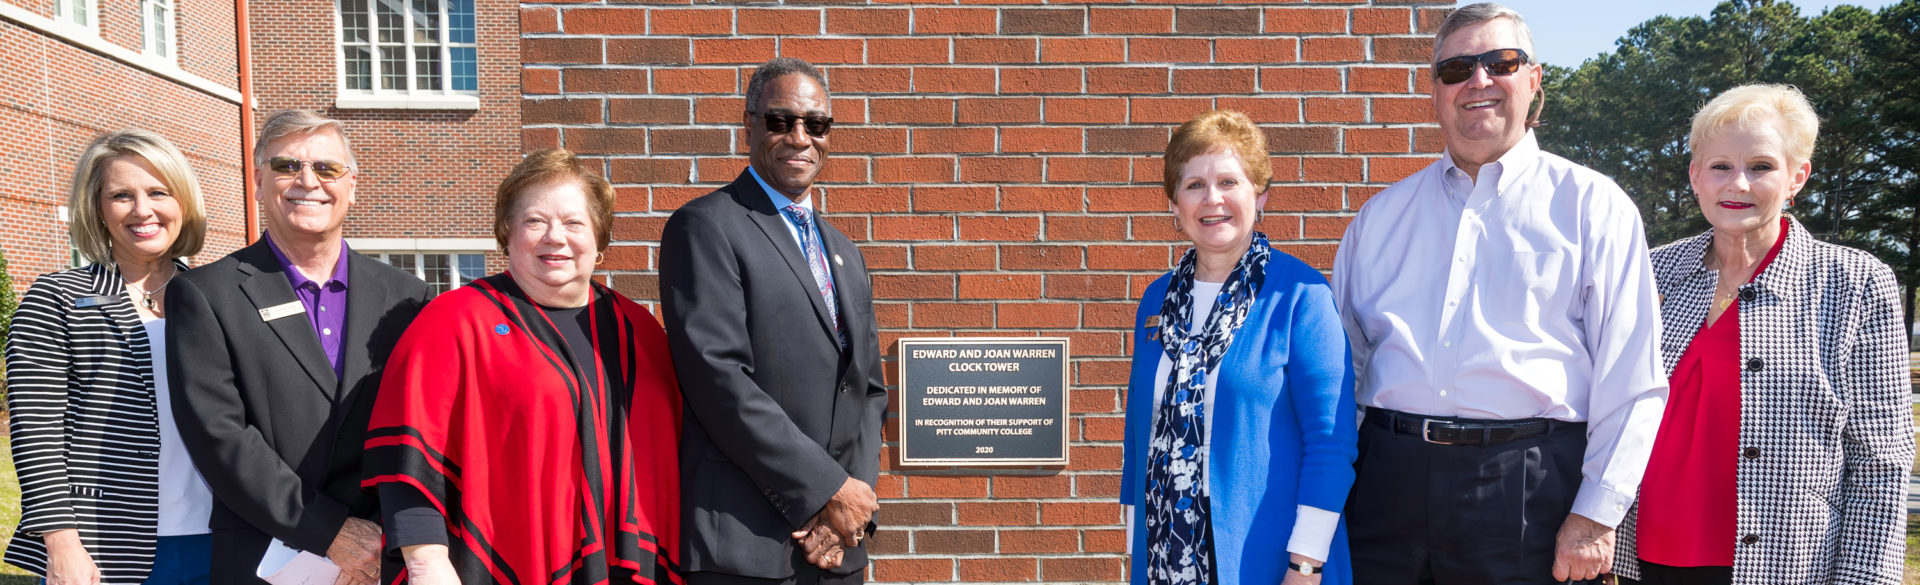 PCC dedicated the Ed & Joan Warren Clock Tower in 2020 with supporters, PCC Foundation officials and college administrators, past and present, on hand for the ceremony.